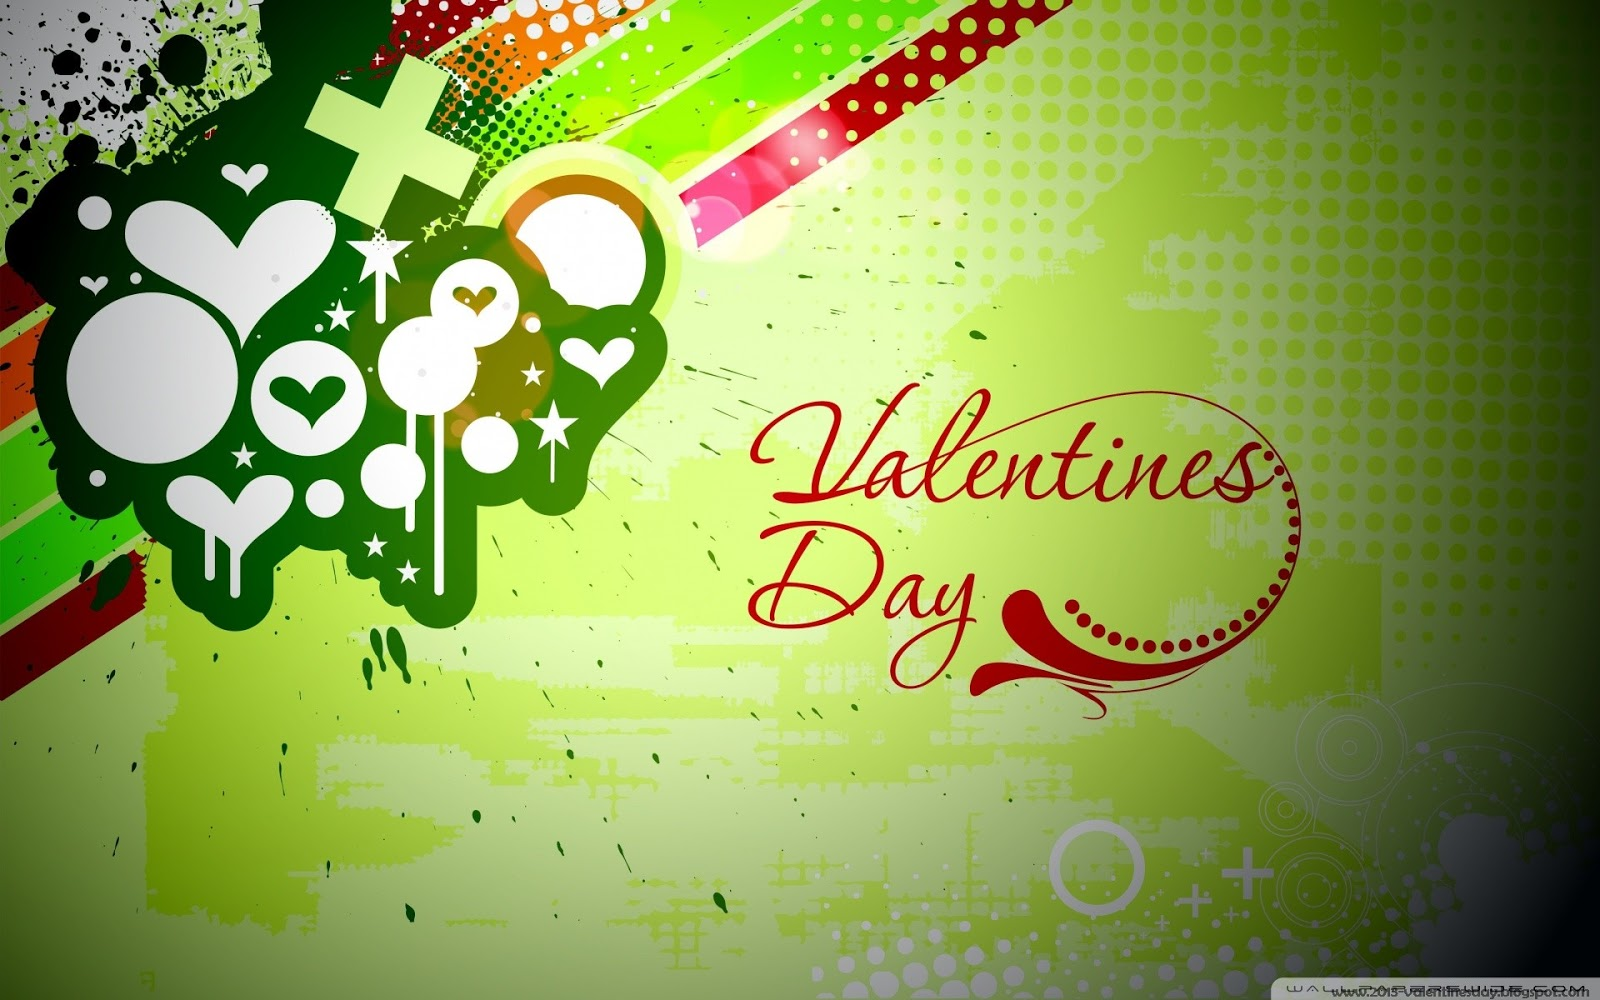 http://1.bp.blogspot.com/-oEnv6r_bJdg/UP2RCKZ2PoI/AAAAAAAAADw/n0TS9r3FCH8/s1600/happy_valentines_day_2013-wallpaper-1920x1200_2.jpg